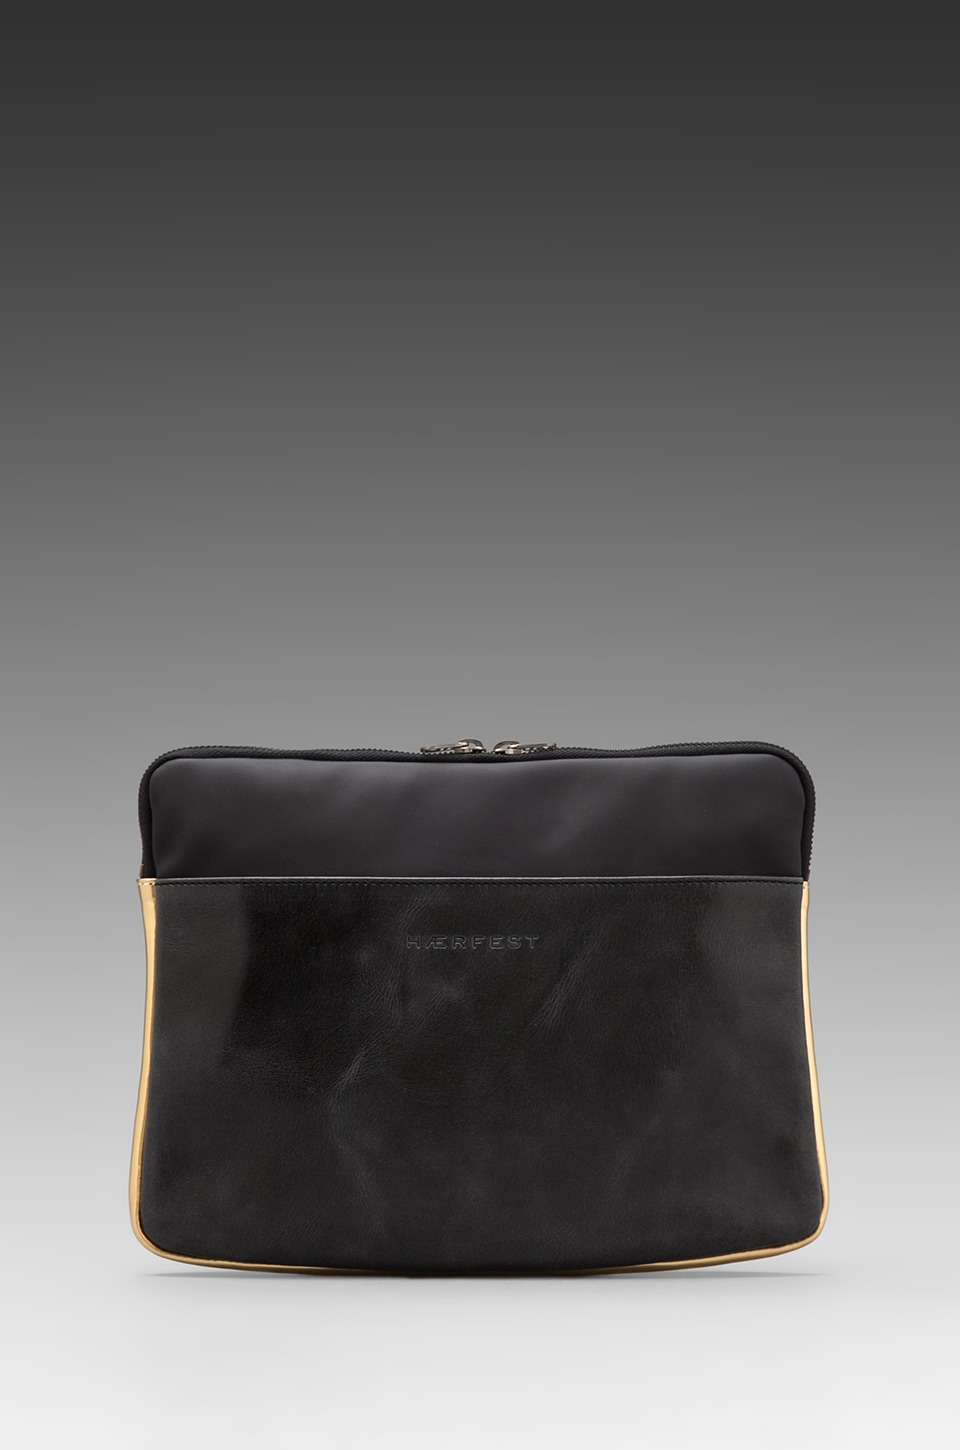 Haerfest Book Sleeve in Black/ Gold